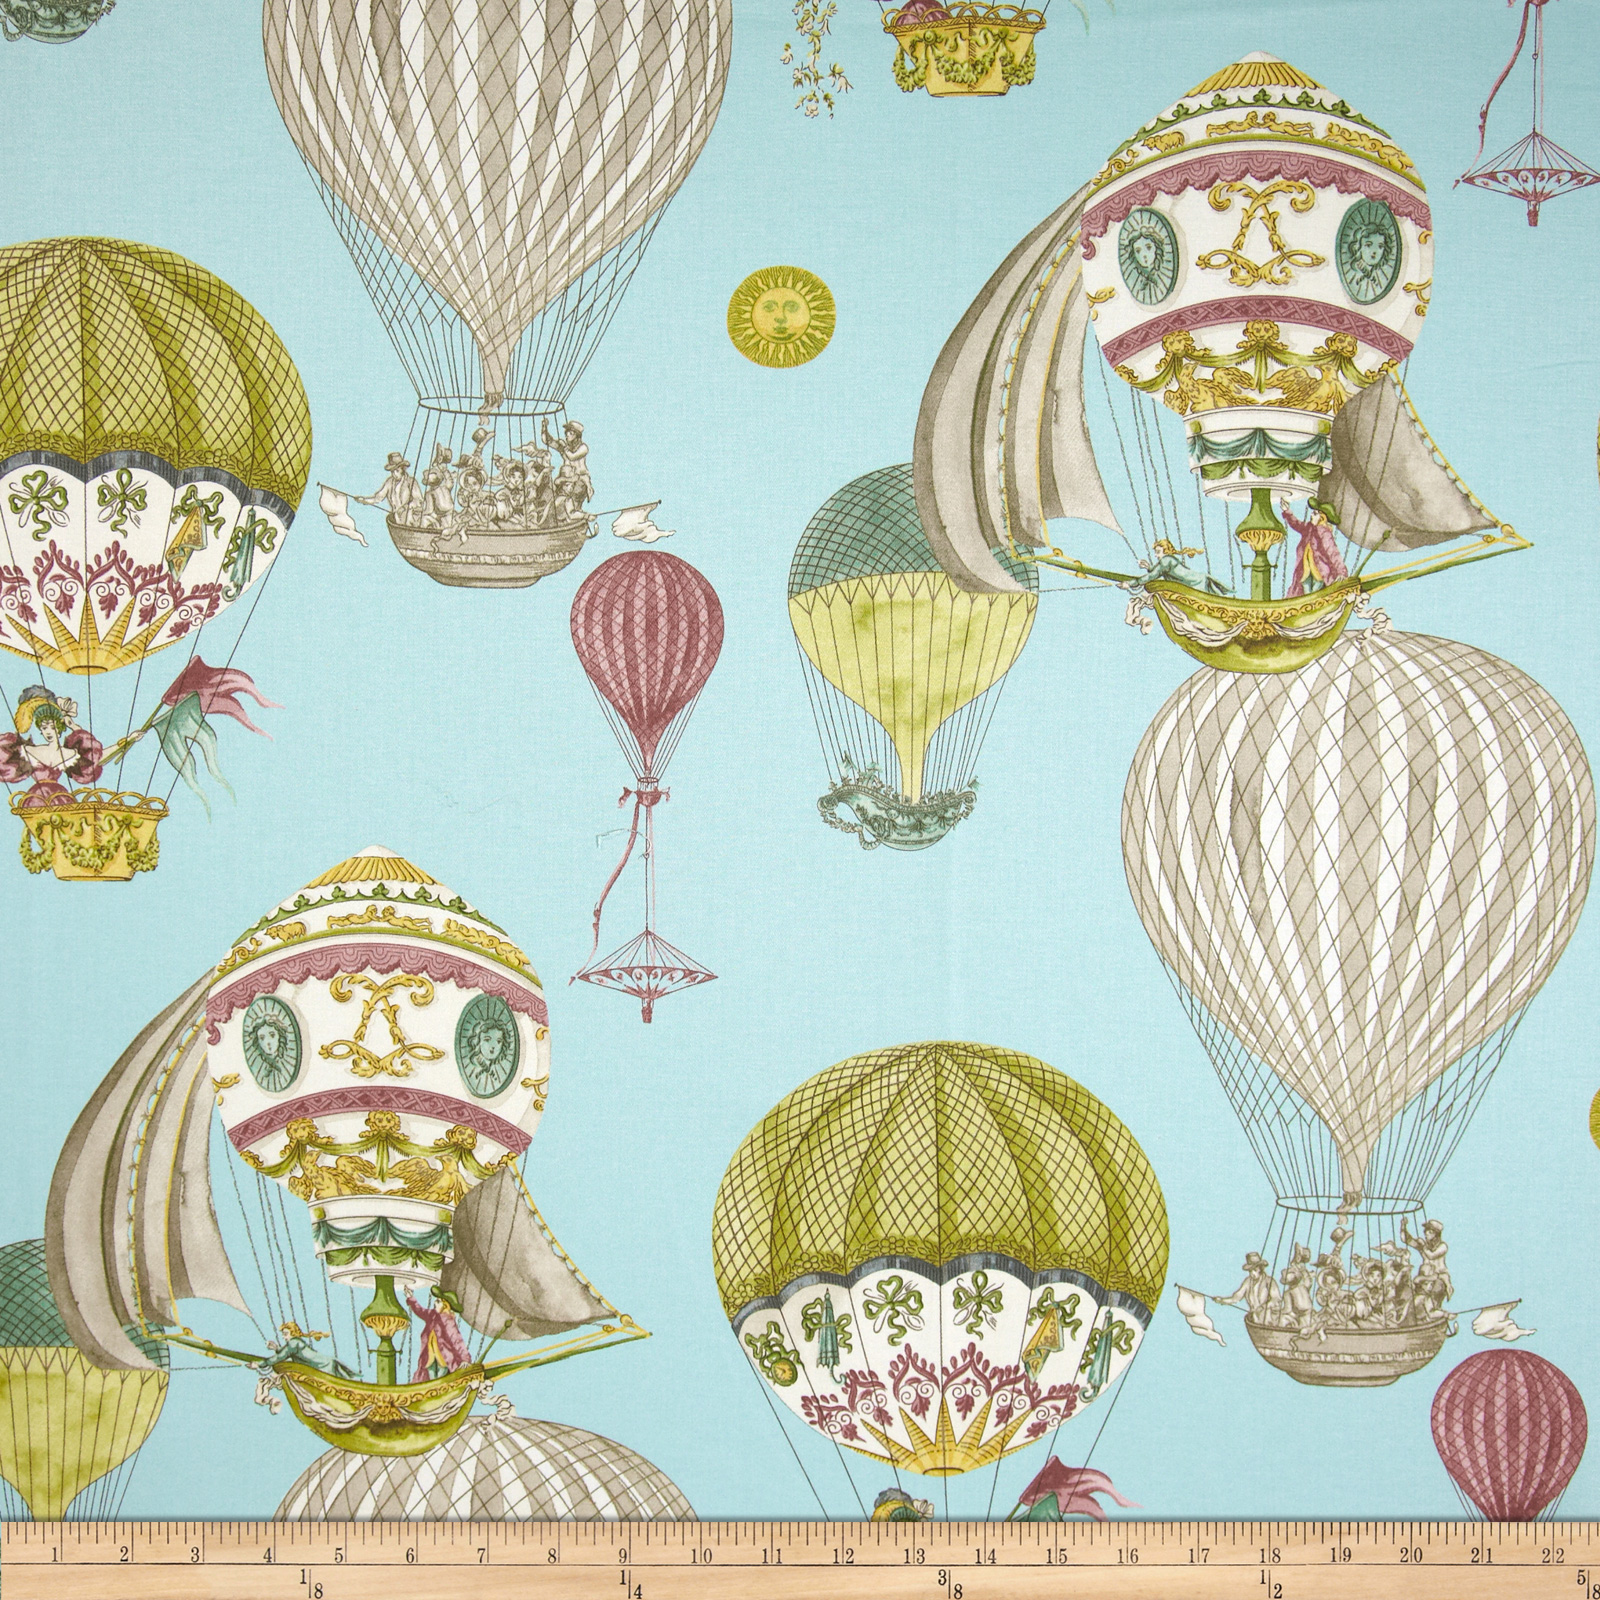 Waverly Aerial Adventure Creme De Menth Fabric by Waverly in USA